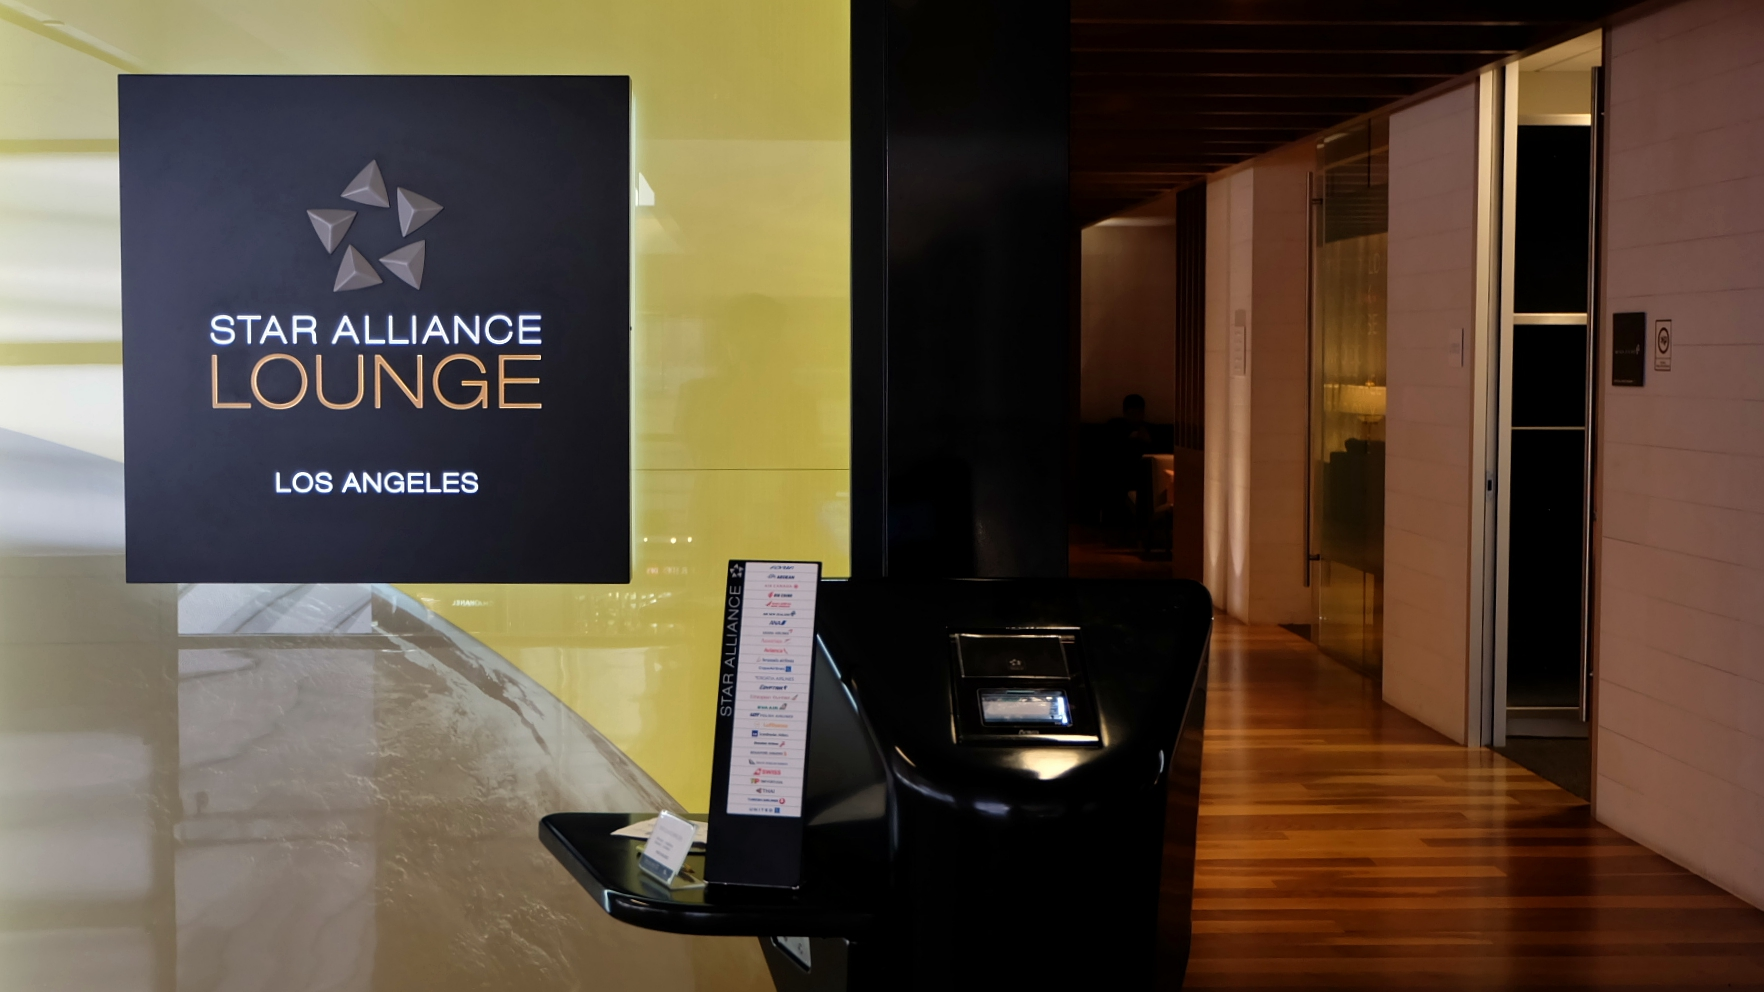 Star Alliance LAX Lounge Sign (Matt@TWN).jpg